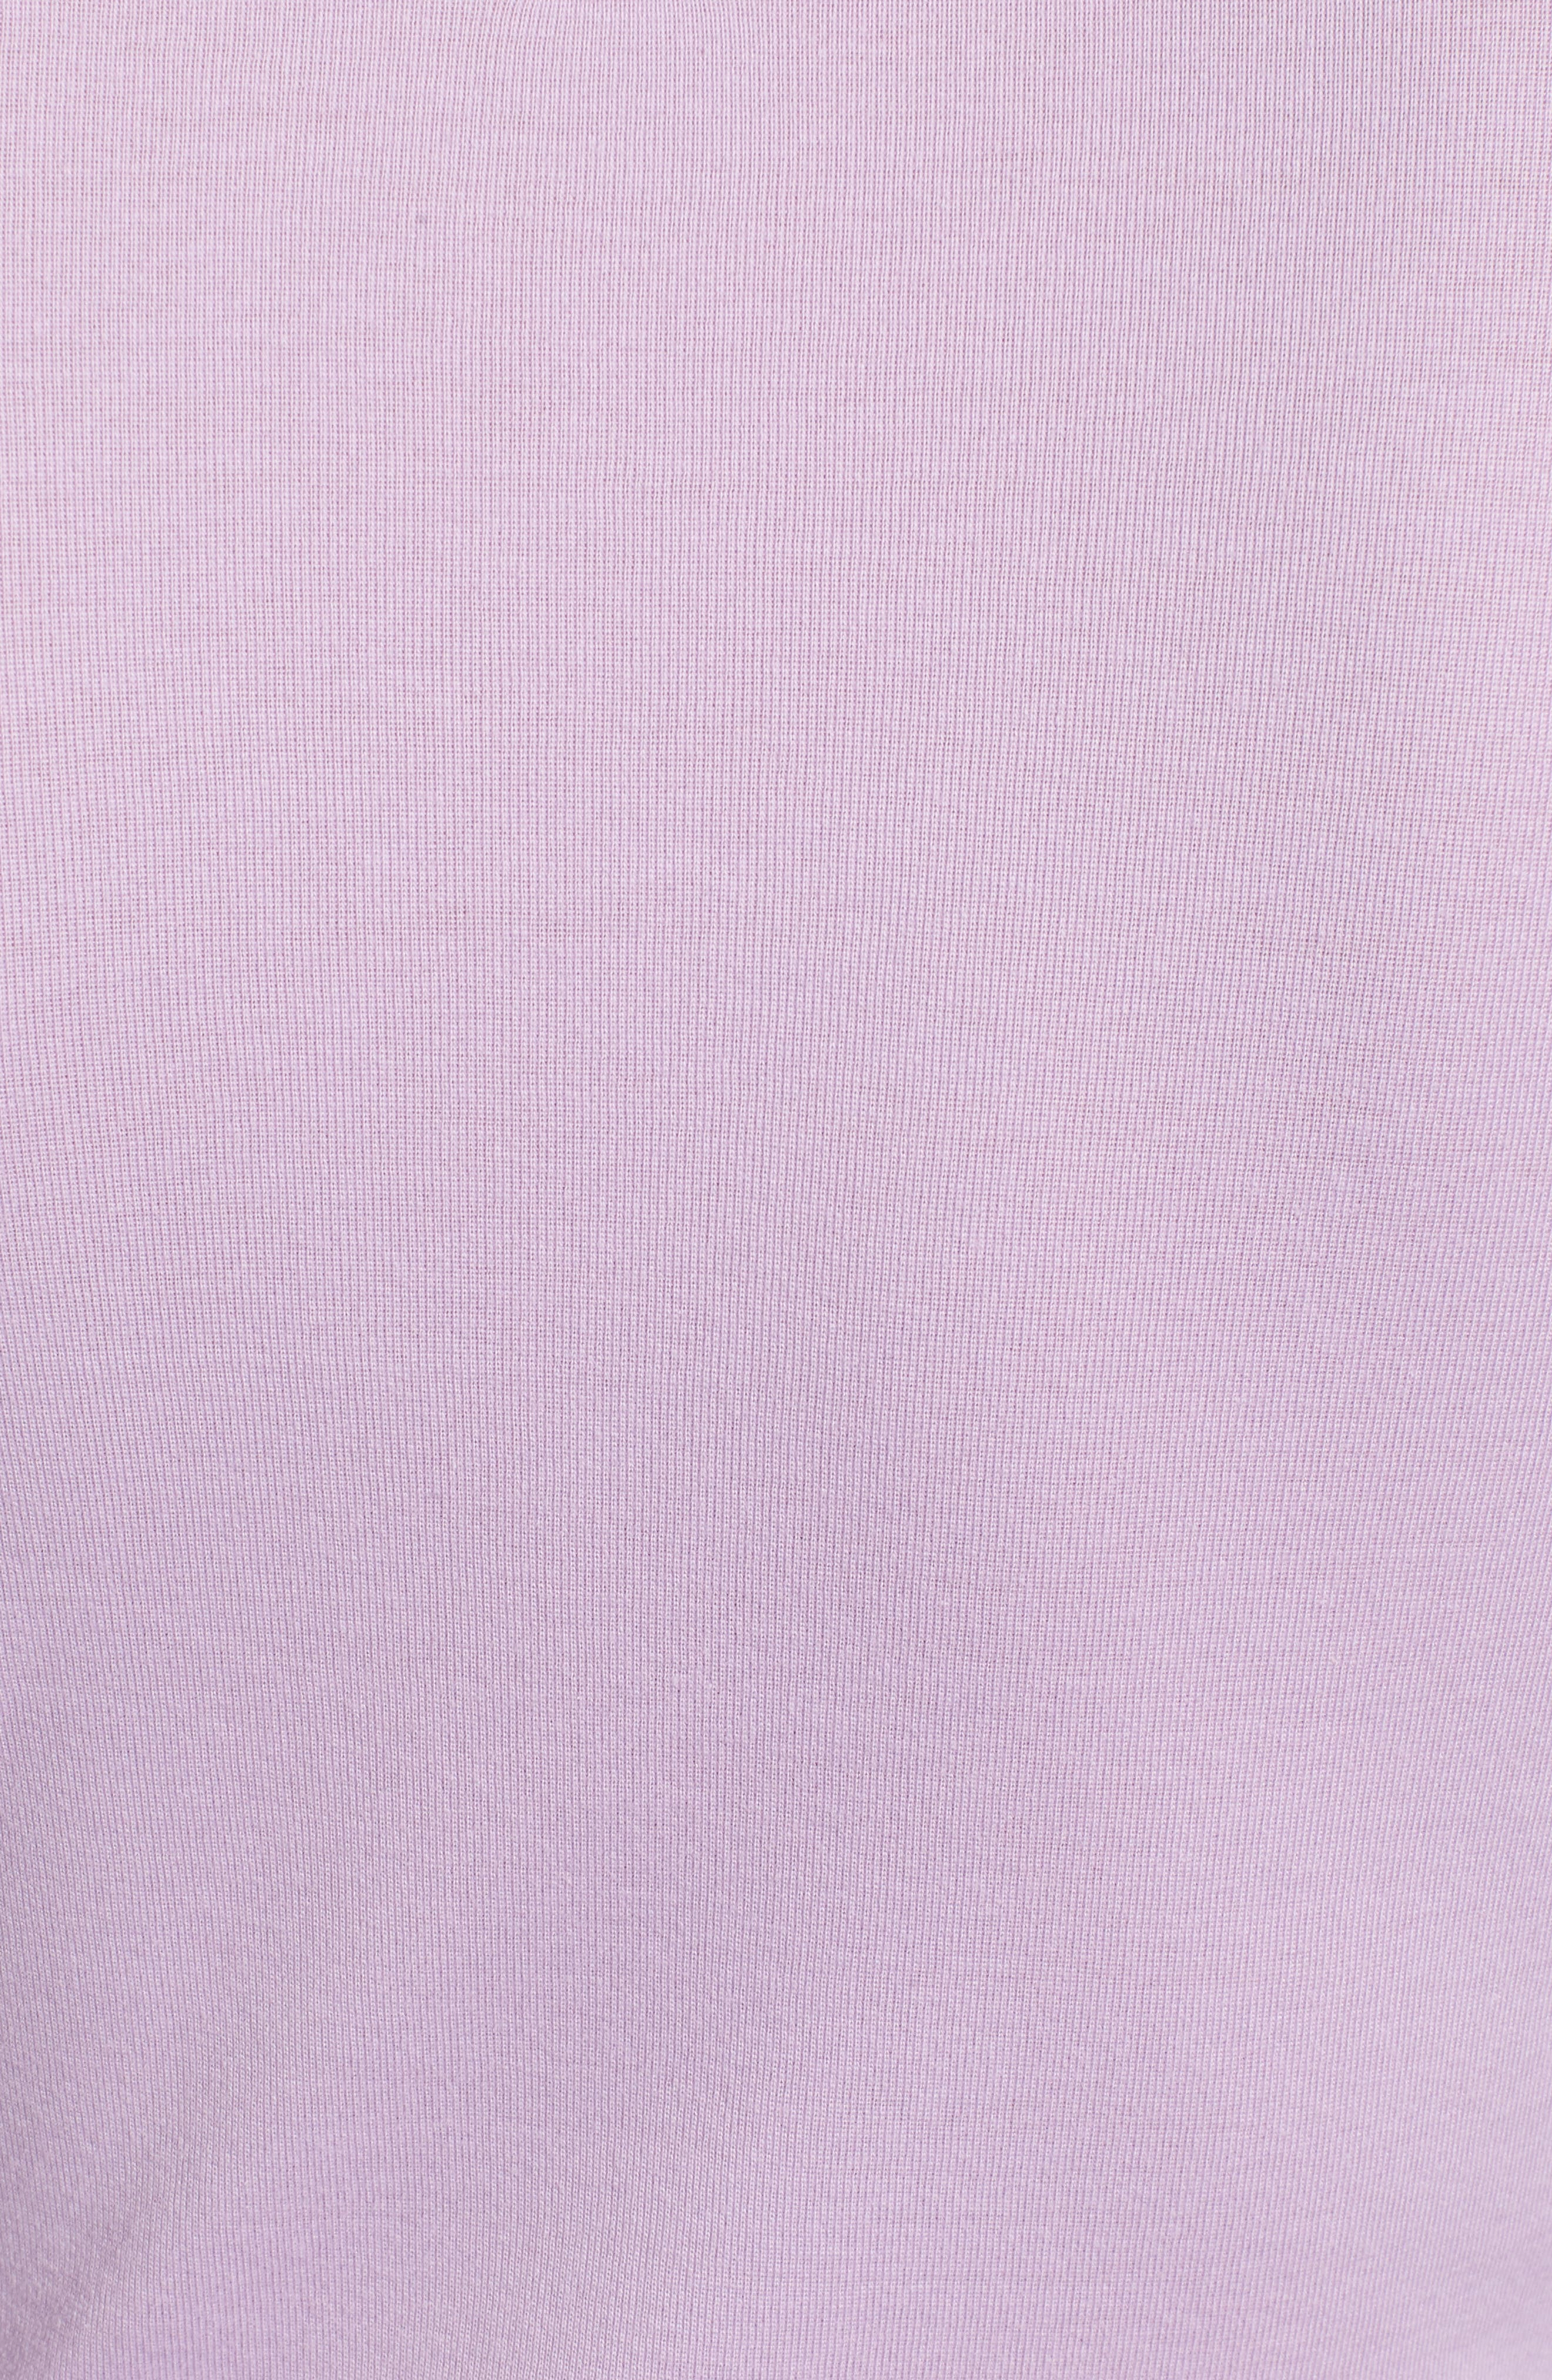 'Melody' Long Sleeve Scoop Neck Tee,                             Alternate thumbnail 6, color,                             530